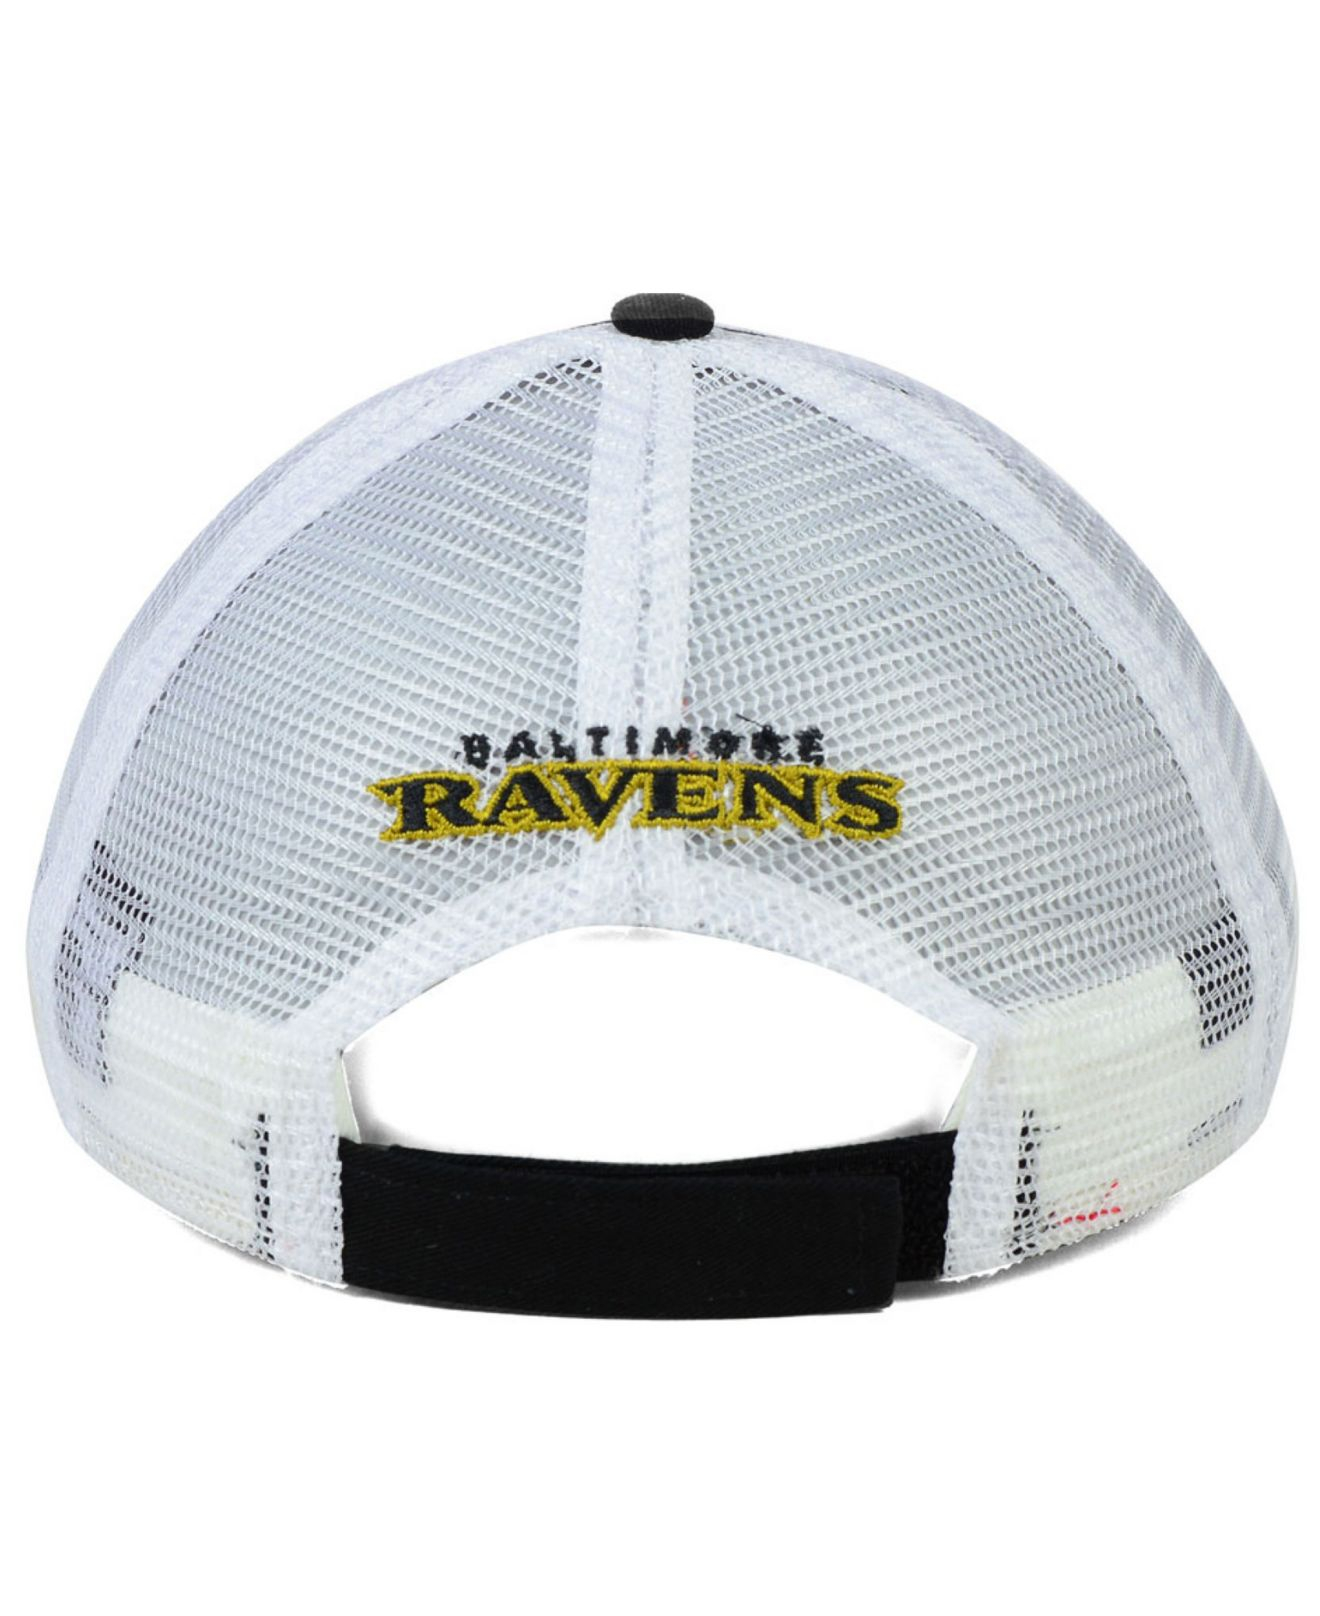 Womens Baltimore Ravens New Era Black Double Over 9forty